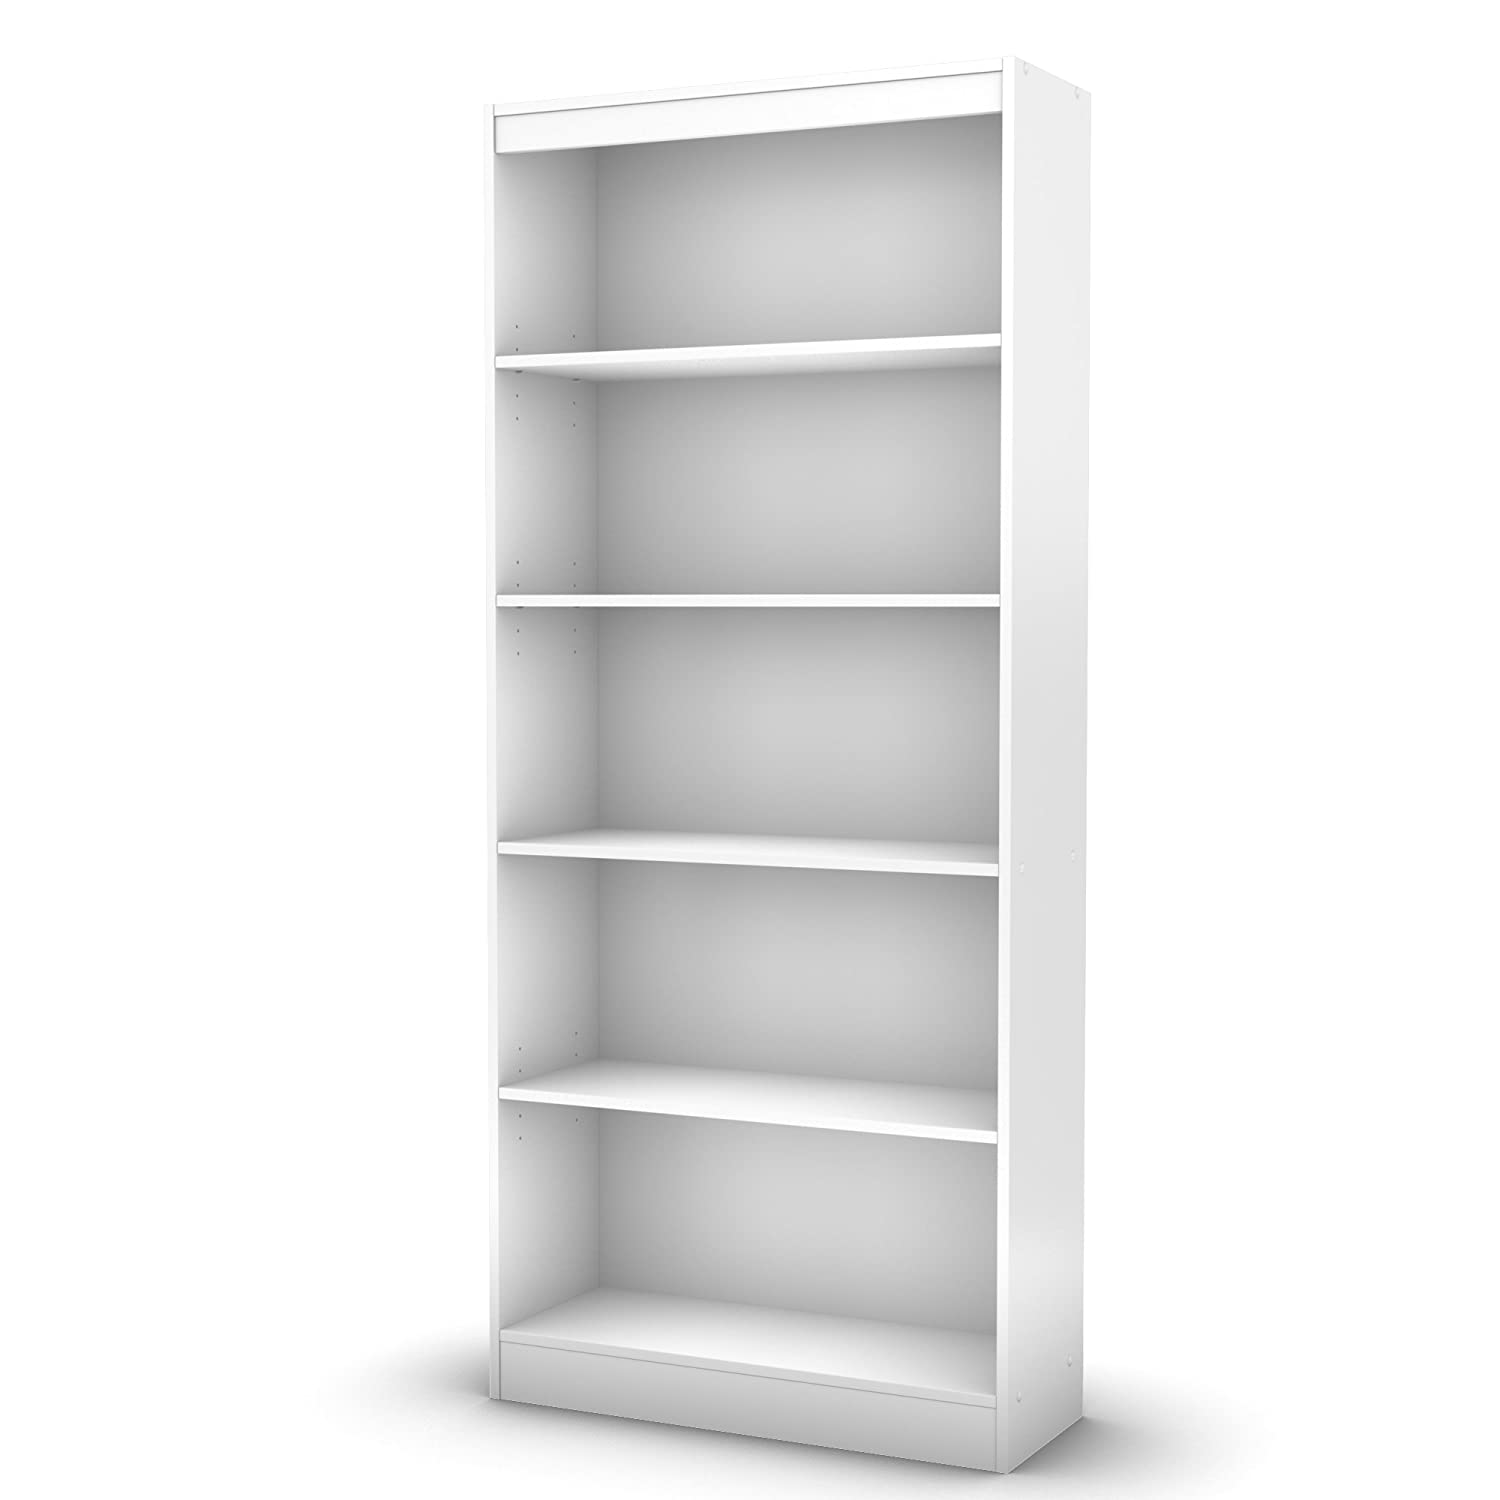 Amazon.com: South Shore Axess Collection 5-Shelf Bookcase, Pure White:  Kitchen & Dining - Amazon.com: South Shore Axess Collection 5-Shelf Bookcase, Pure